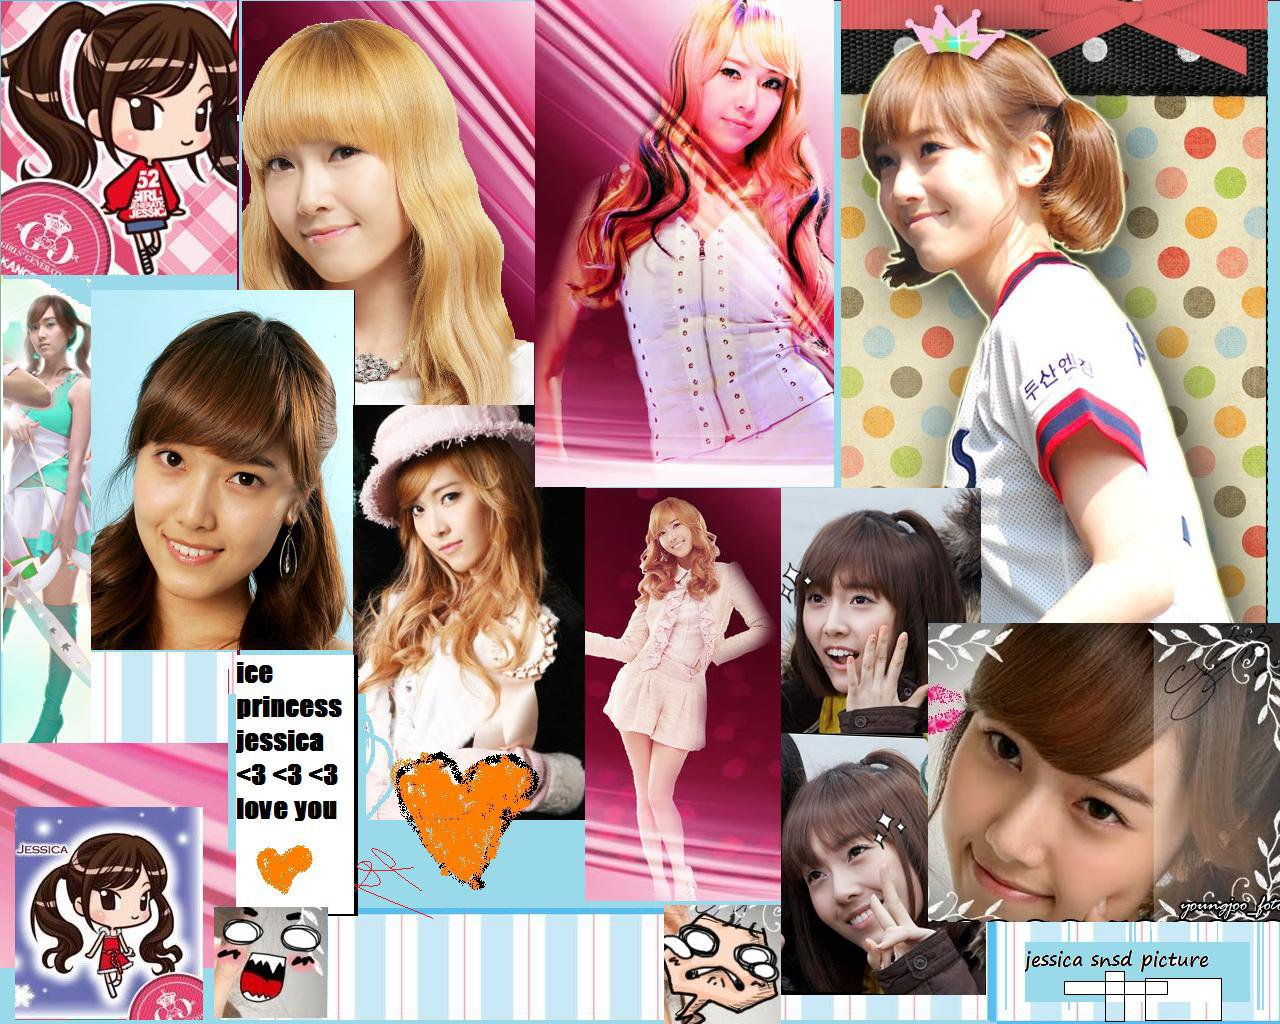 snsd-girls-generation-snsd-24263994-1280